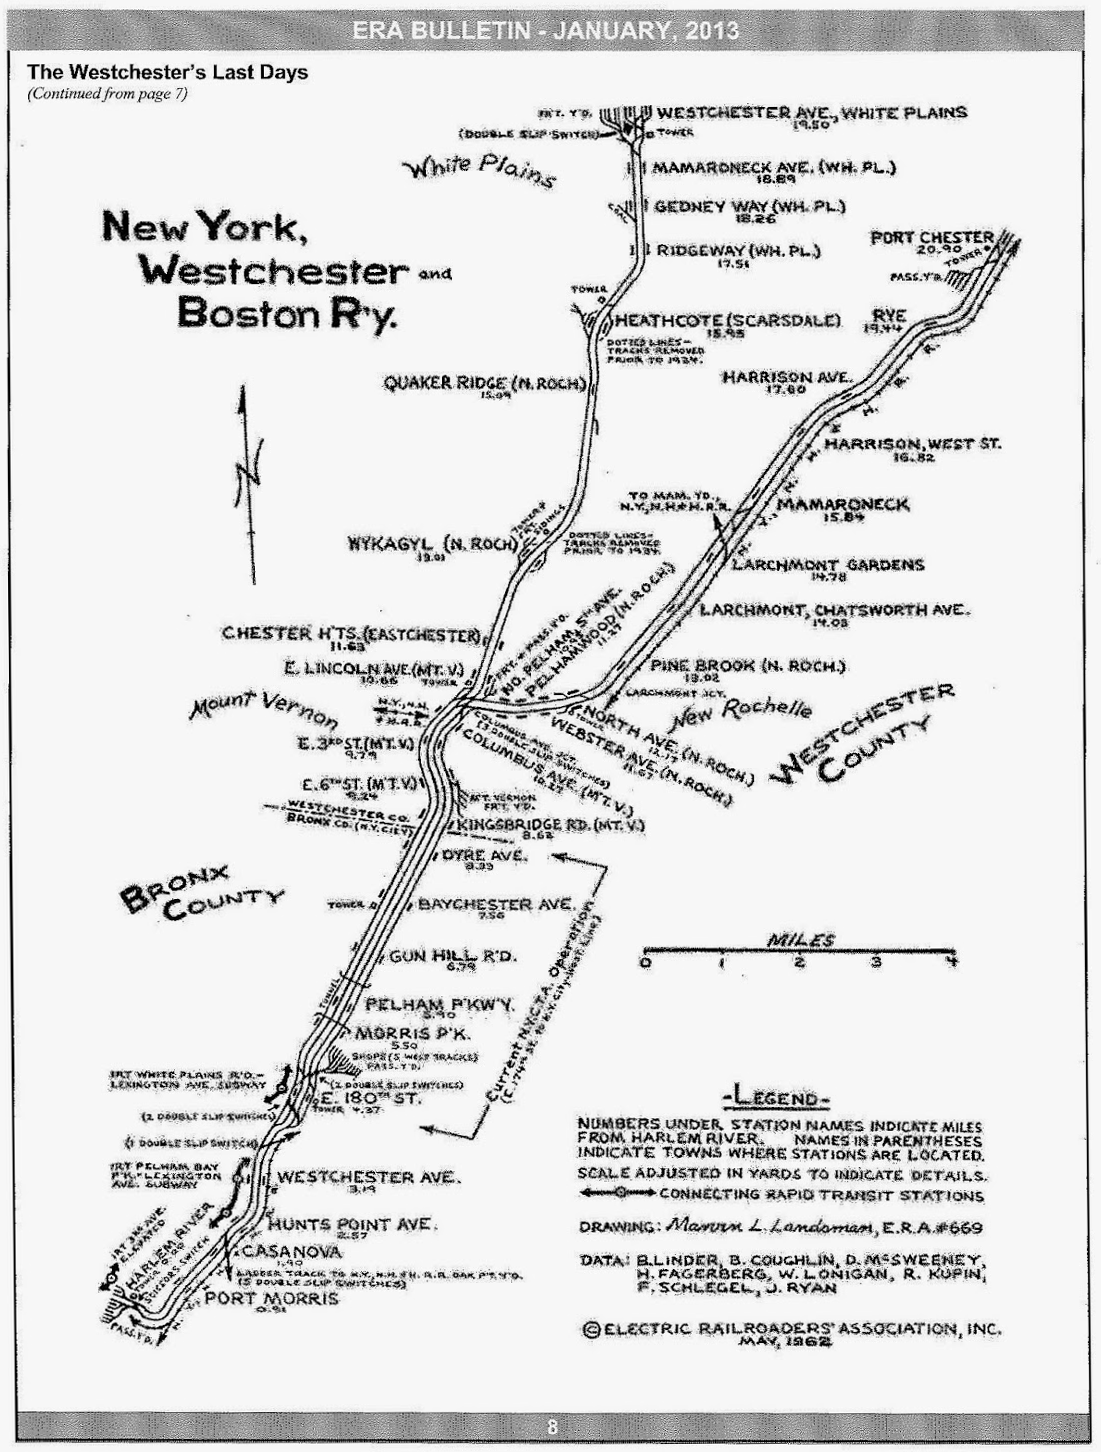 Track Map Of The New York Westchester Boston Railway Defunct Commuter Line In The New York City Northern Suburbs Transit Map Westchester New York